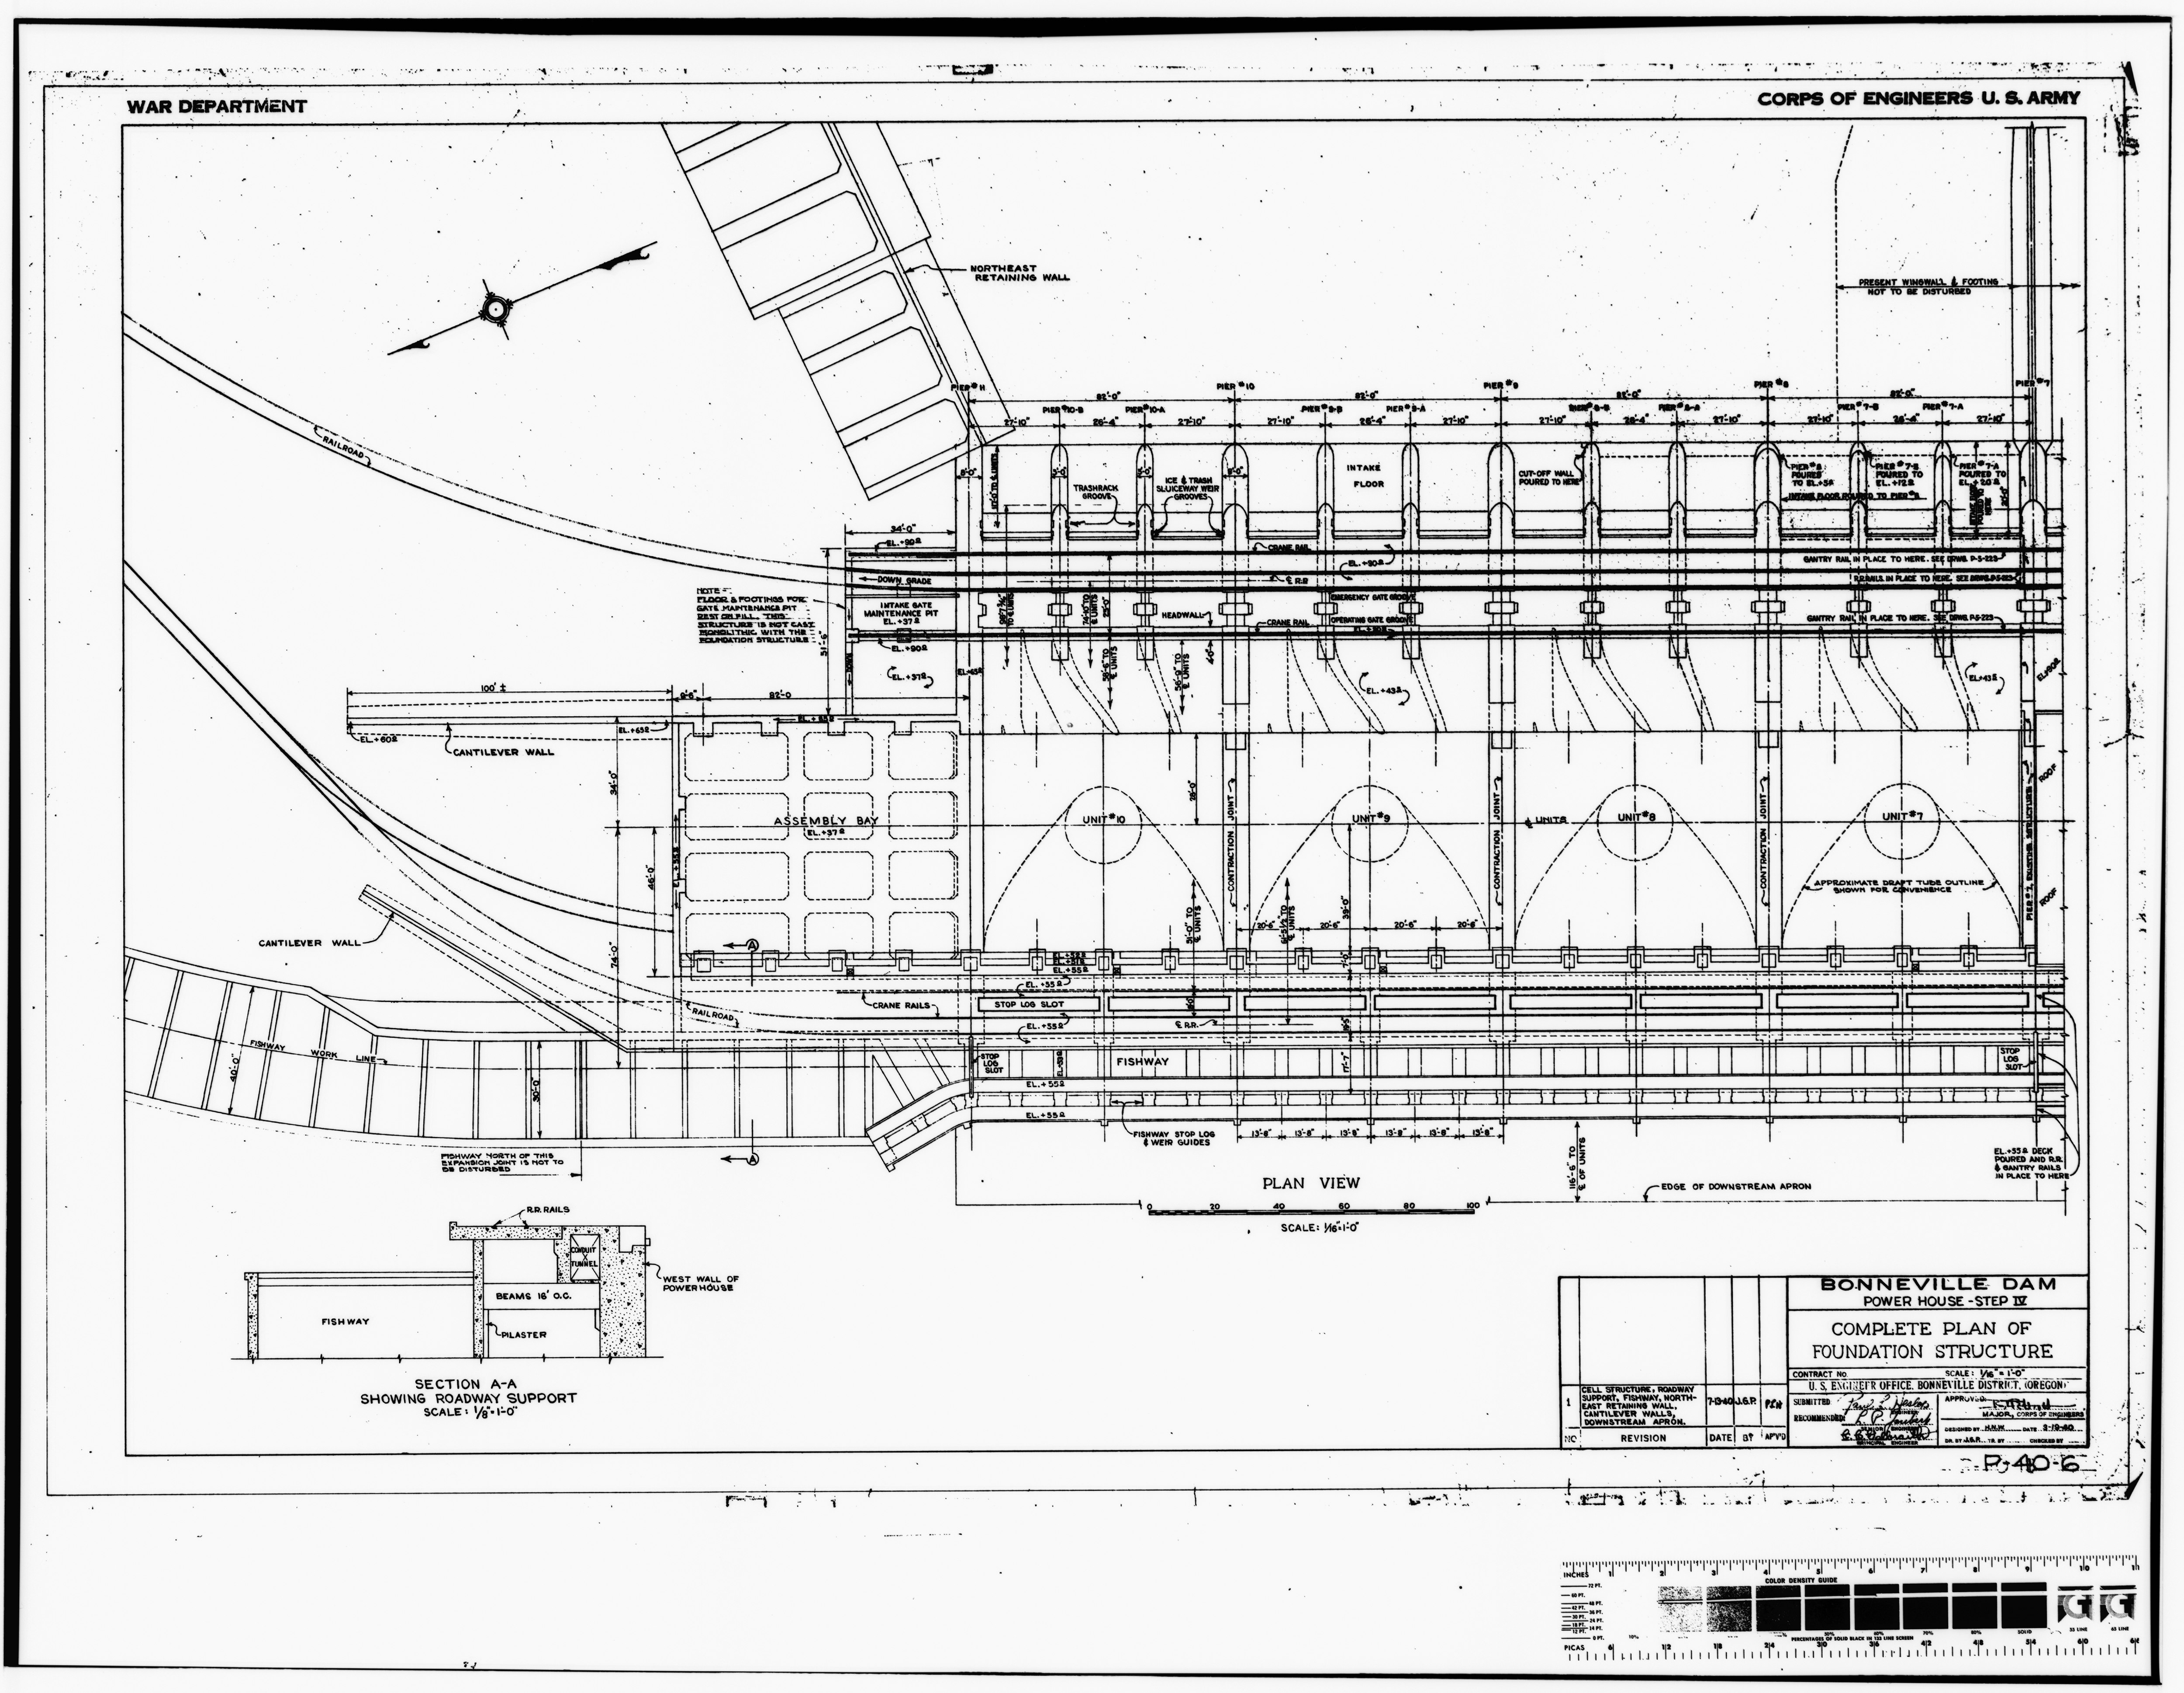 File Photocopy Of Original Construction Drawing Dated 19 March Original Print In The